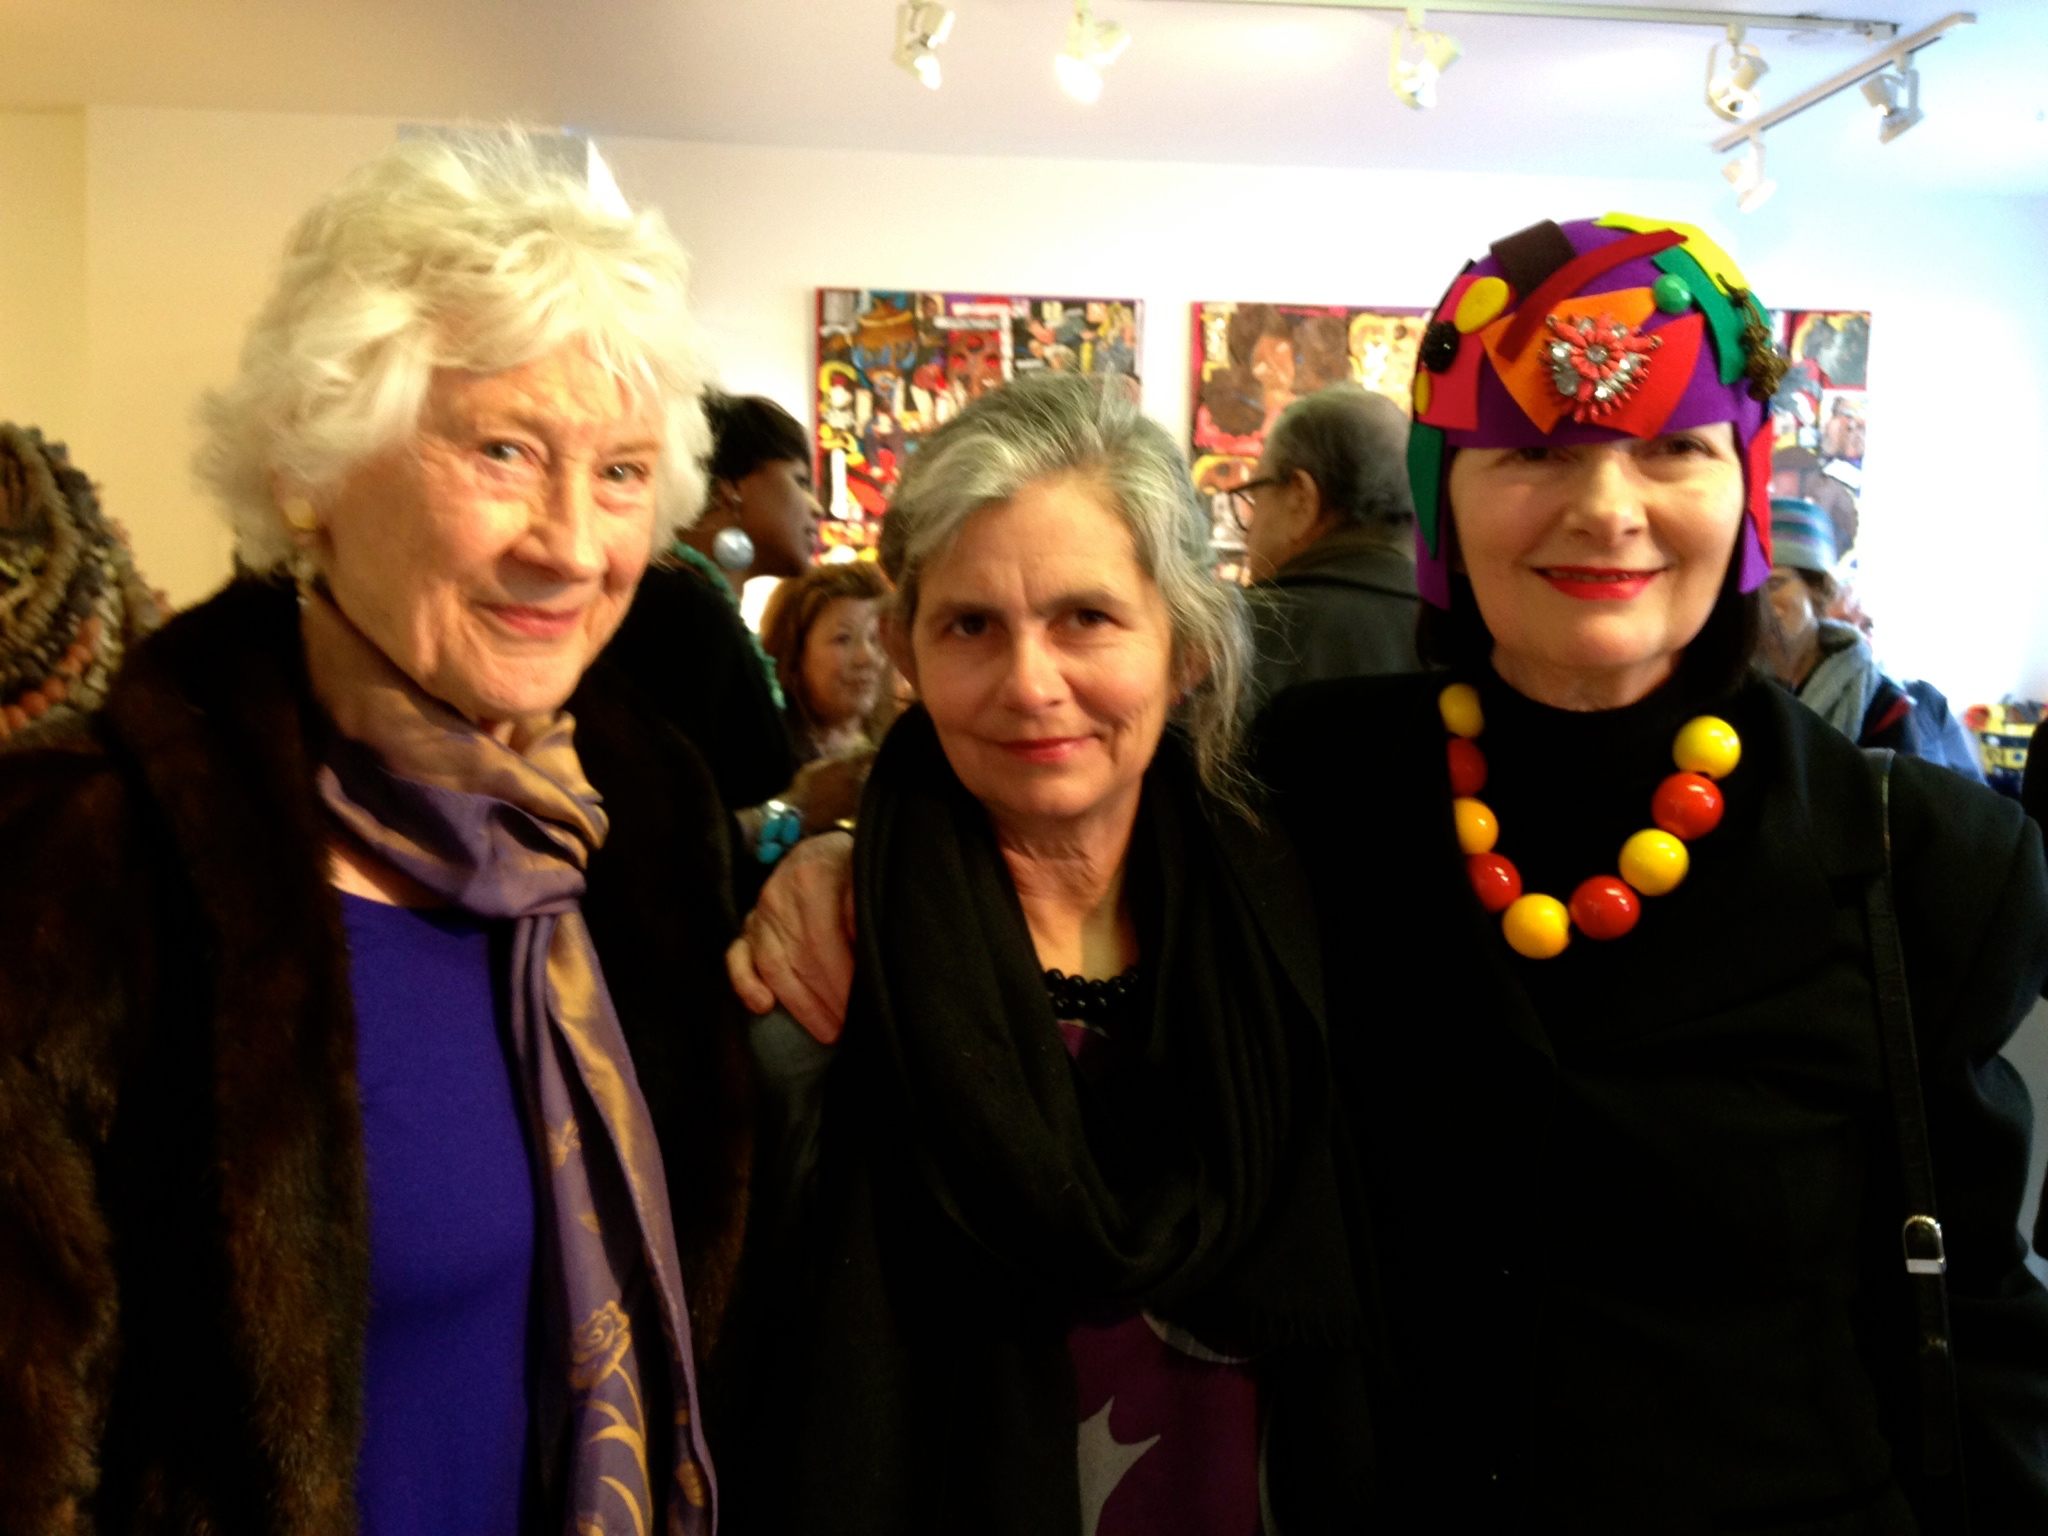 Carol Markel, Milliner, Out of Bounds: Freedom of Expression Exhibition, Curated by Shelita Birchett Benash 2015 at Blue Door Gallery, Yonkers, NY